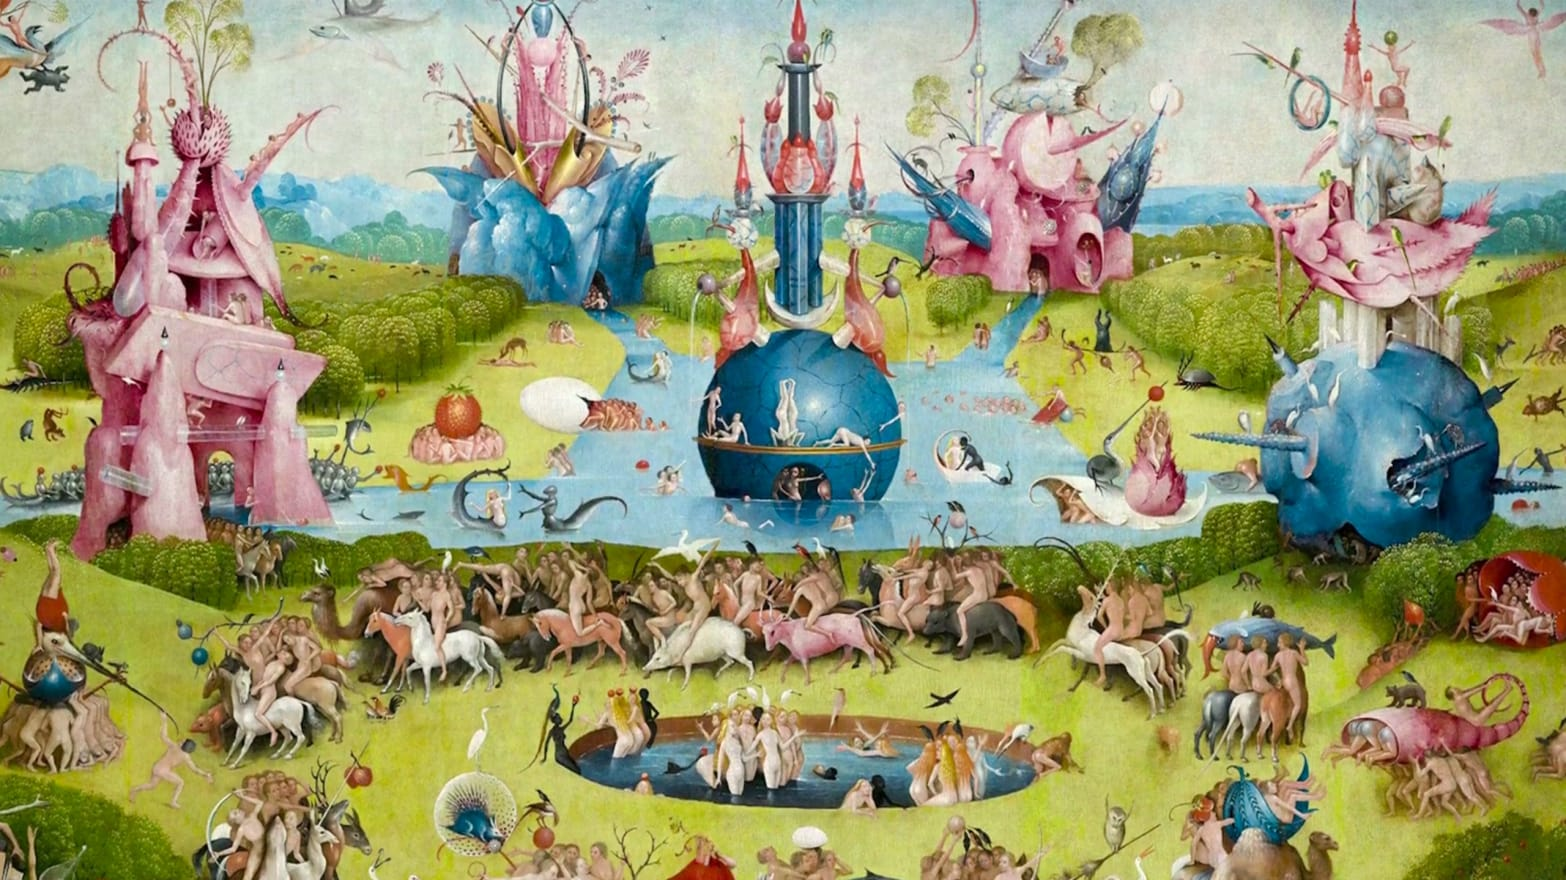 The Cruel Beauty of Hieronymus Bosch: 500 Years of Breathtaking Imagery